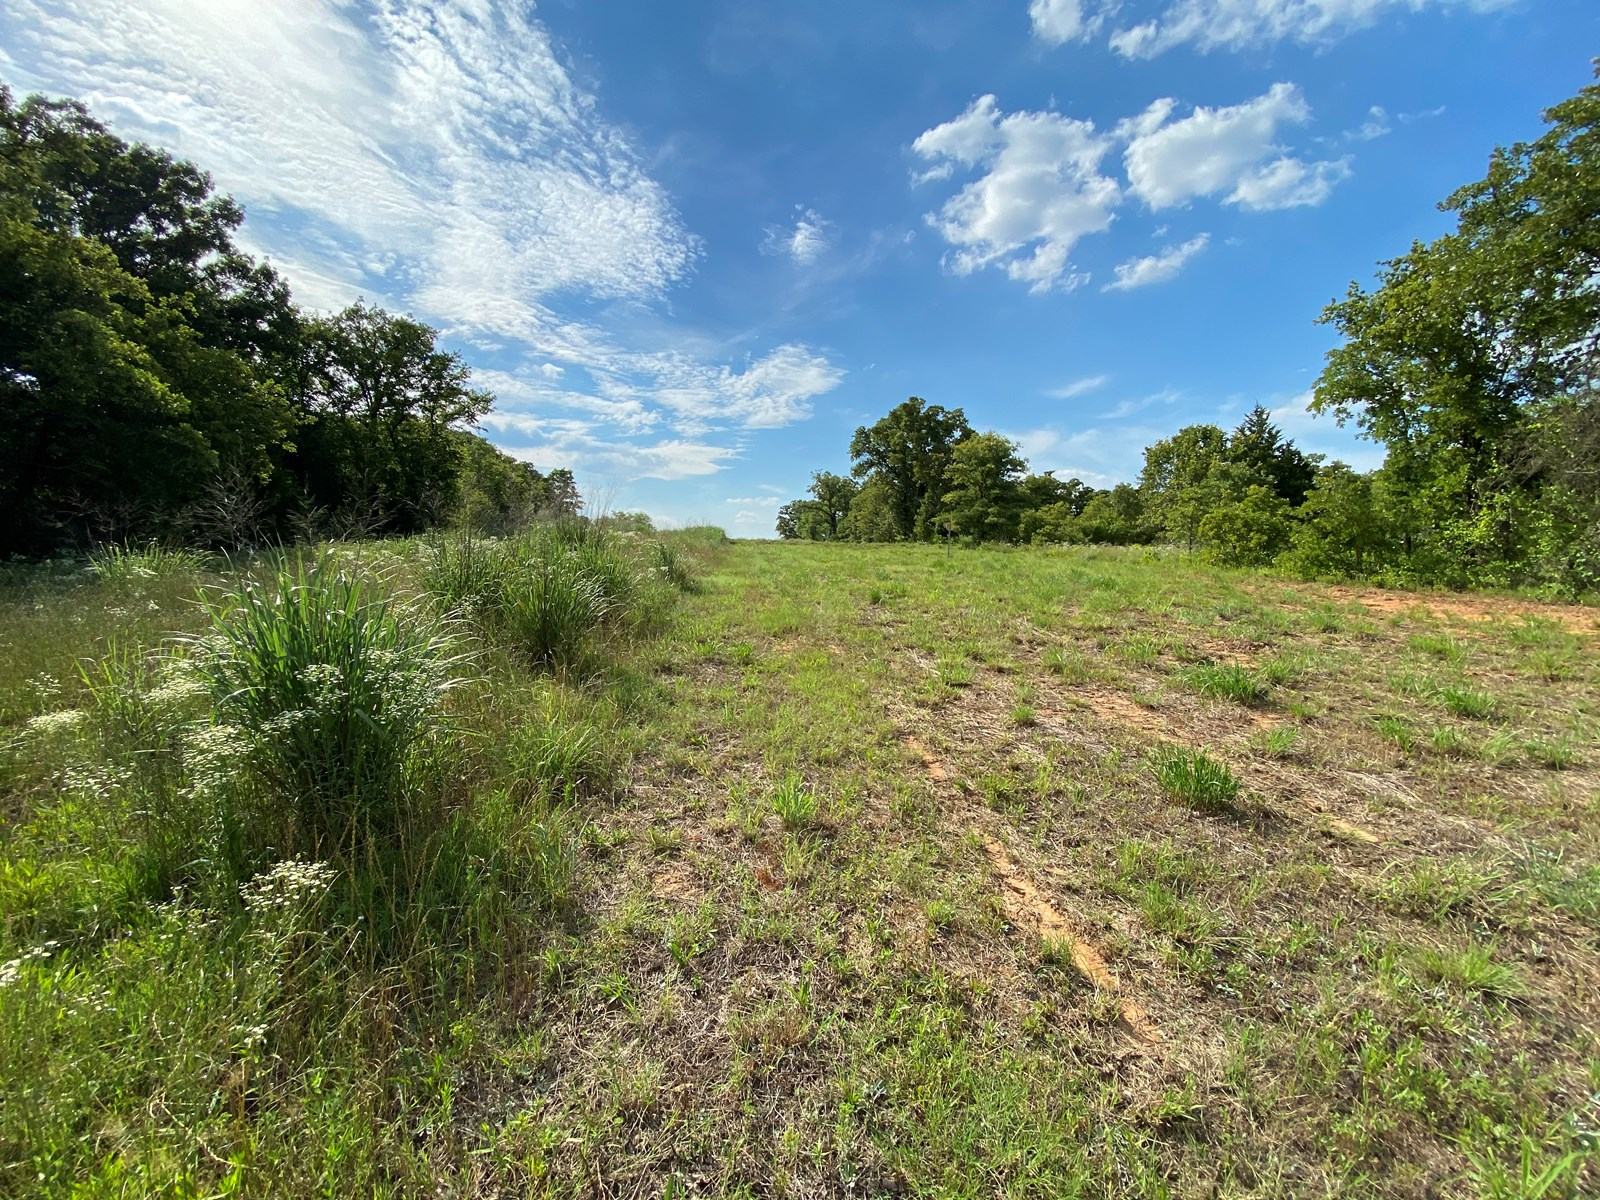 RAW WOODED LAND SUITABLE FOR BUILDING/ HUNTING IN OKLAHOMA